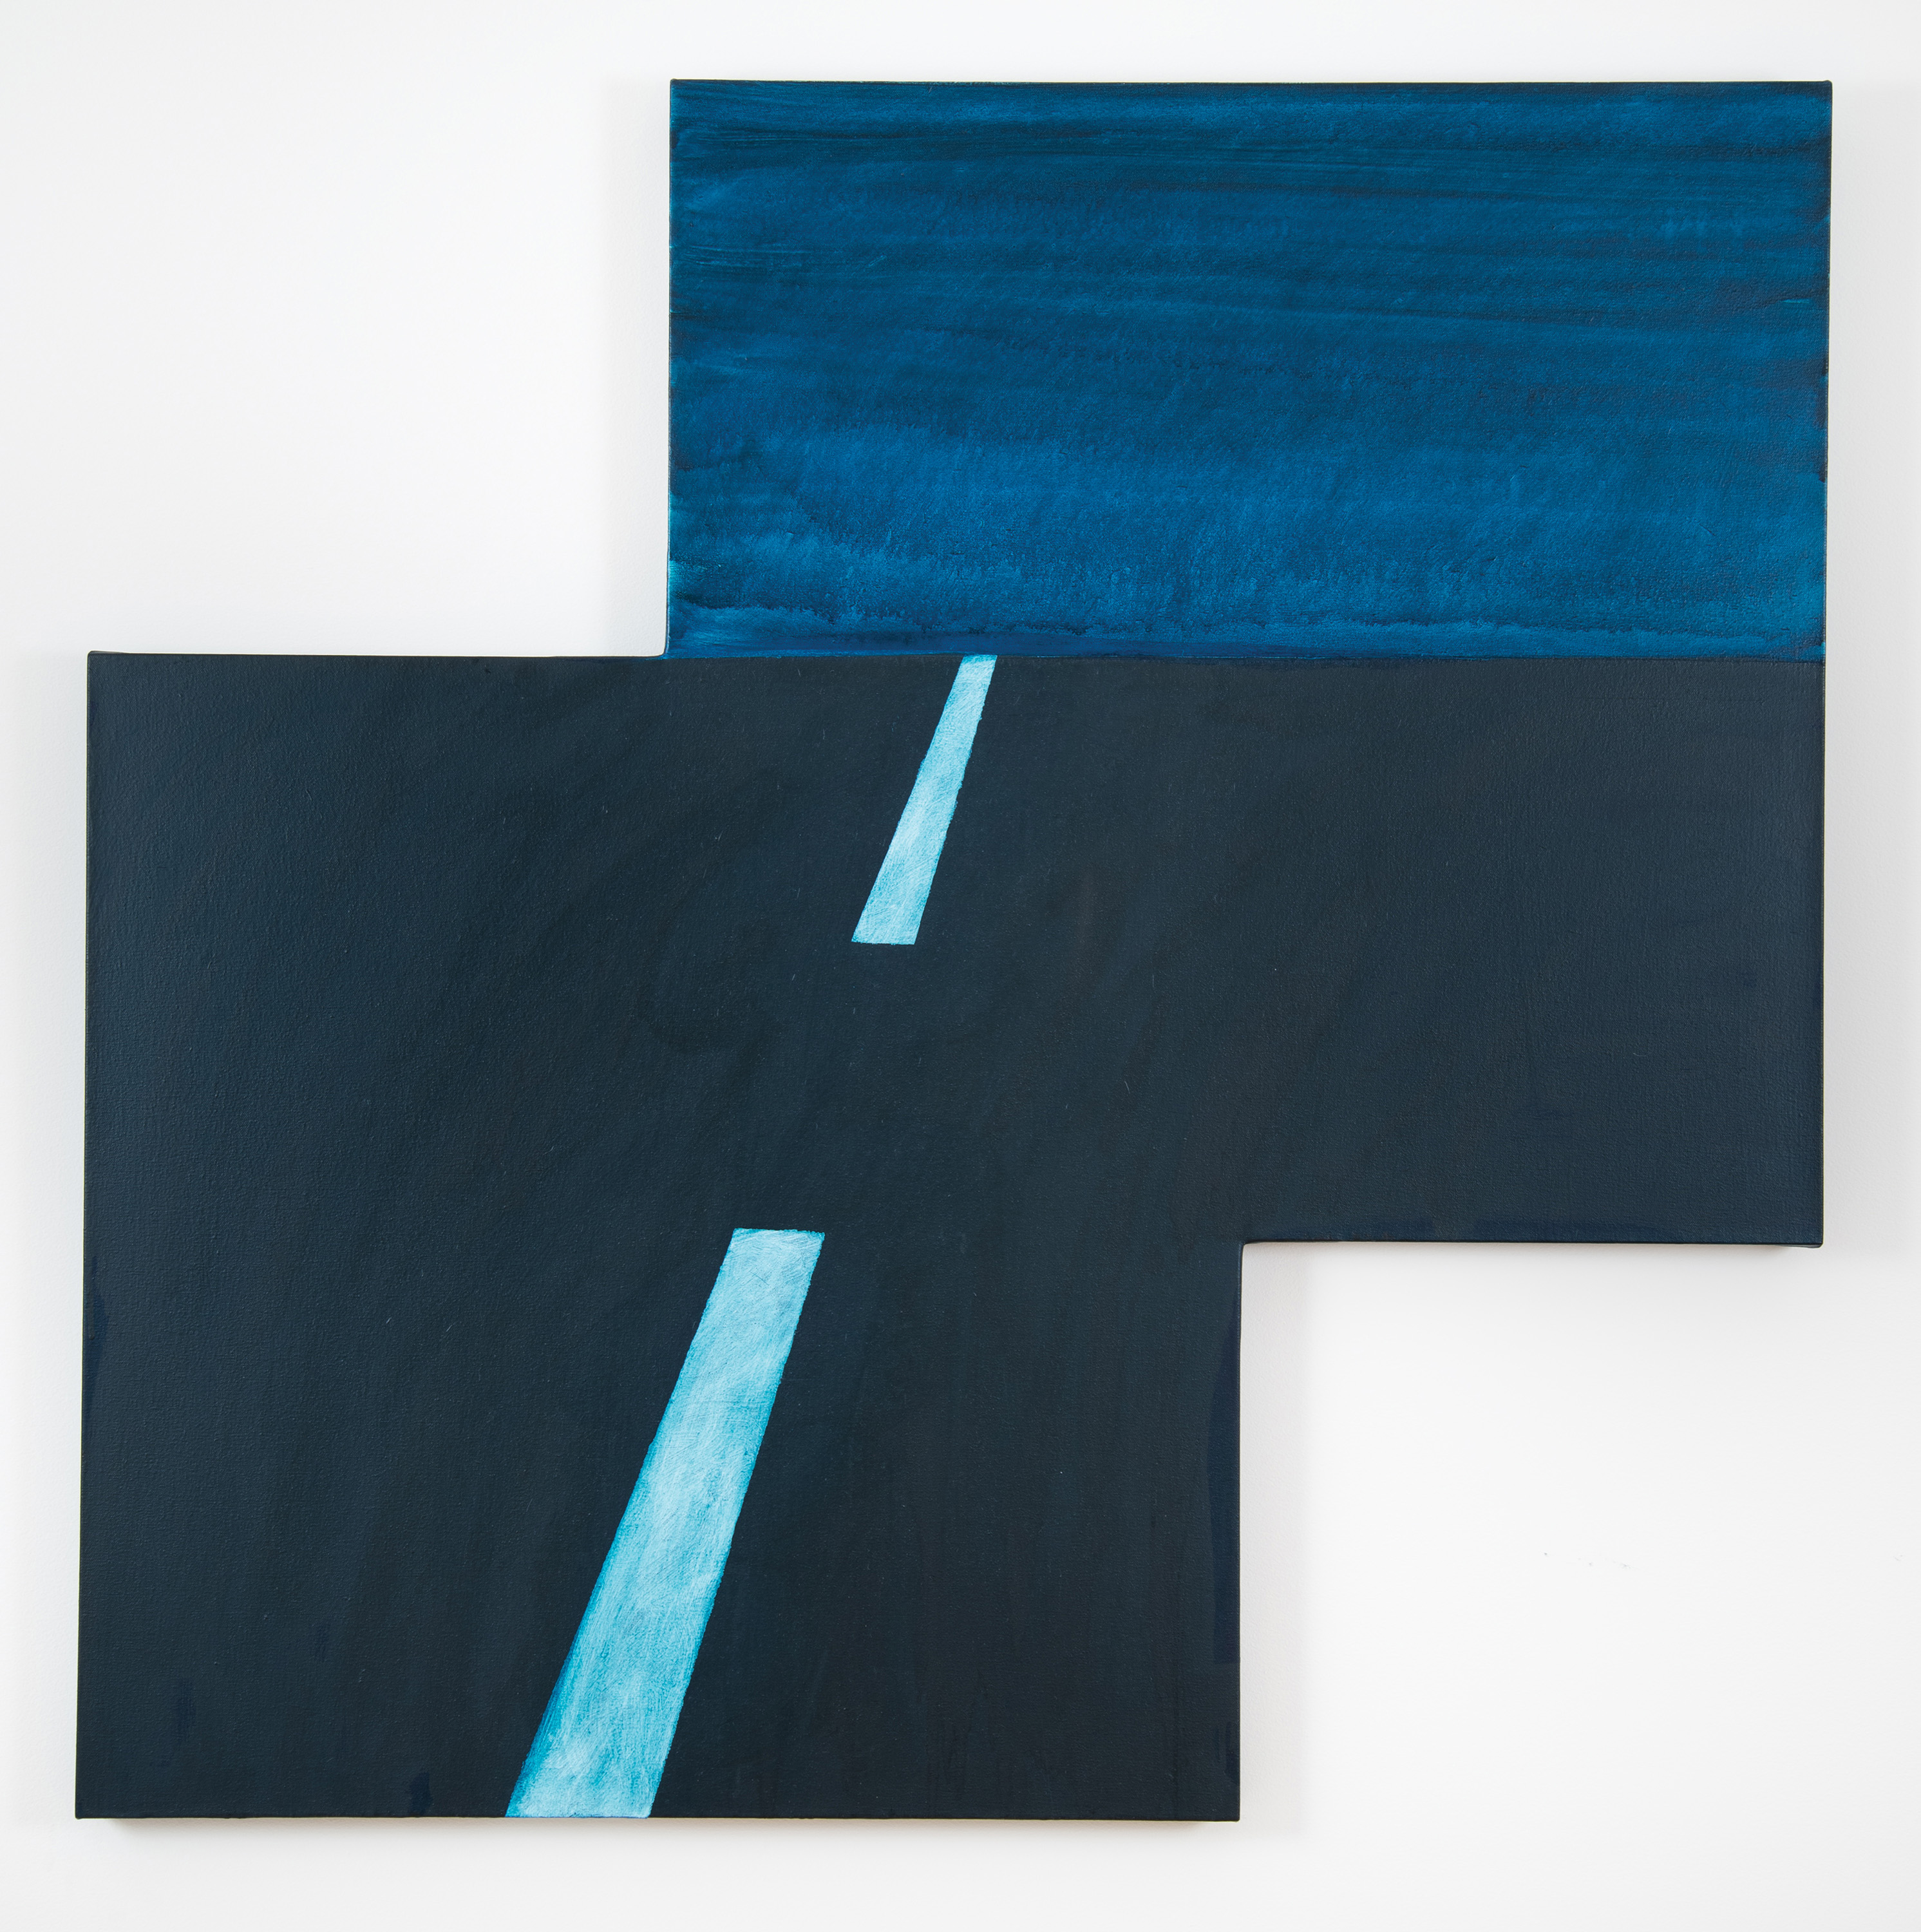 charley peters writes on mary heilmann at the whitechapel charley peters writes on mary heilmann at the whitechapel gallery ldquo